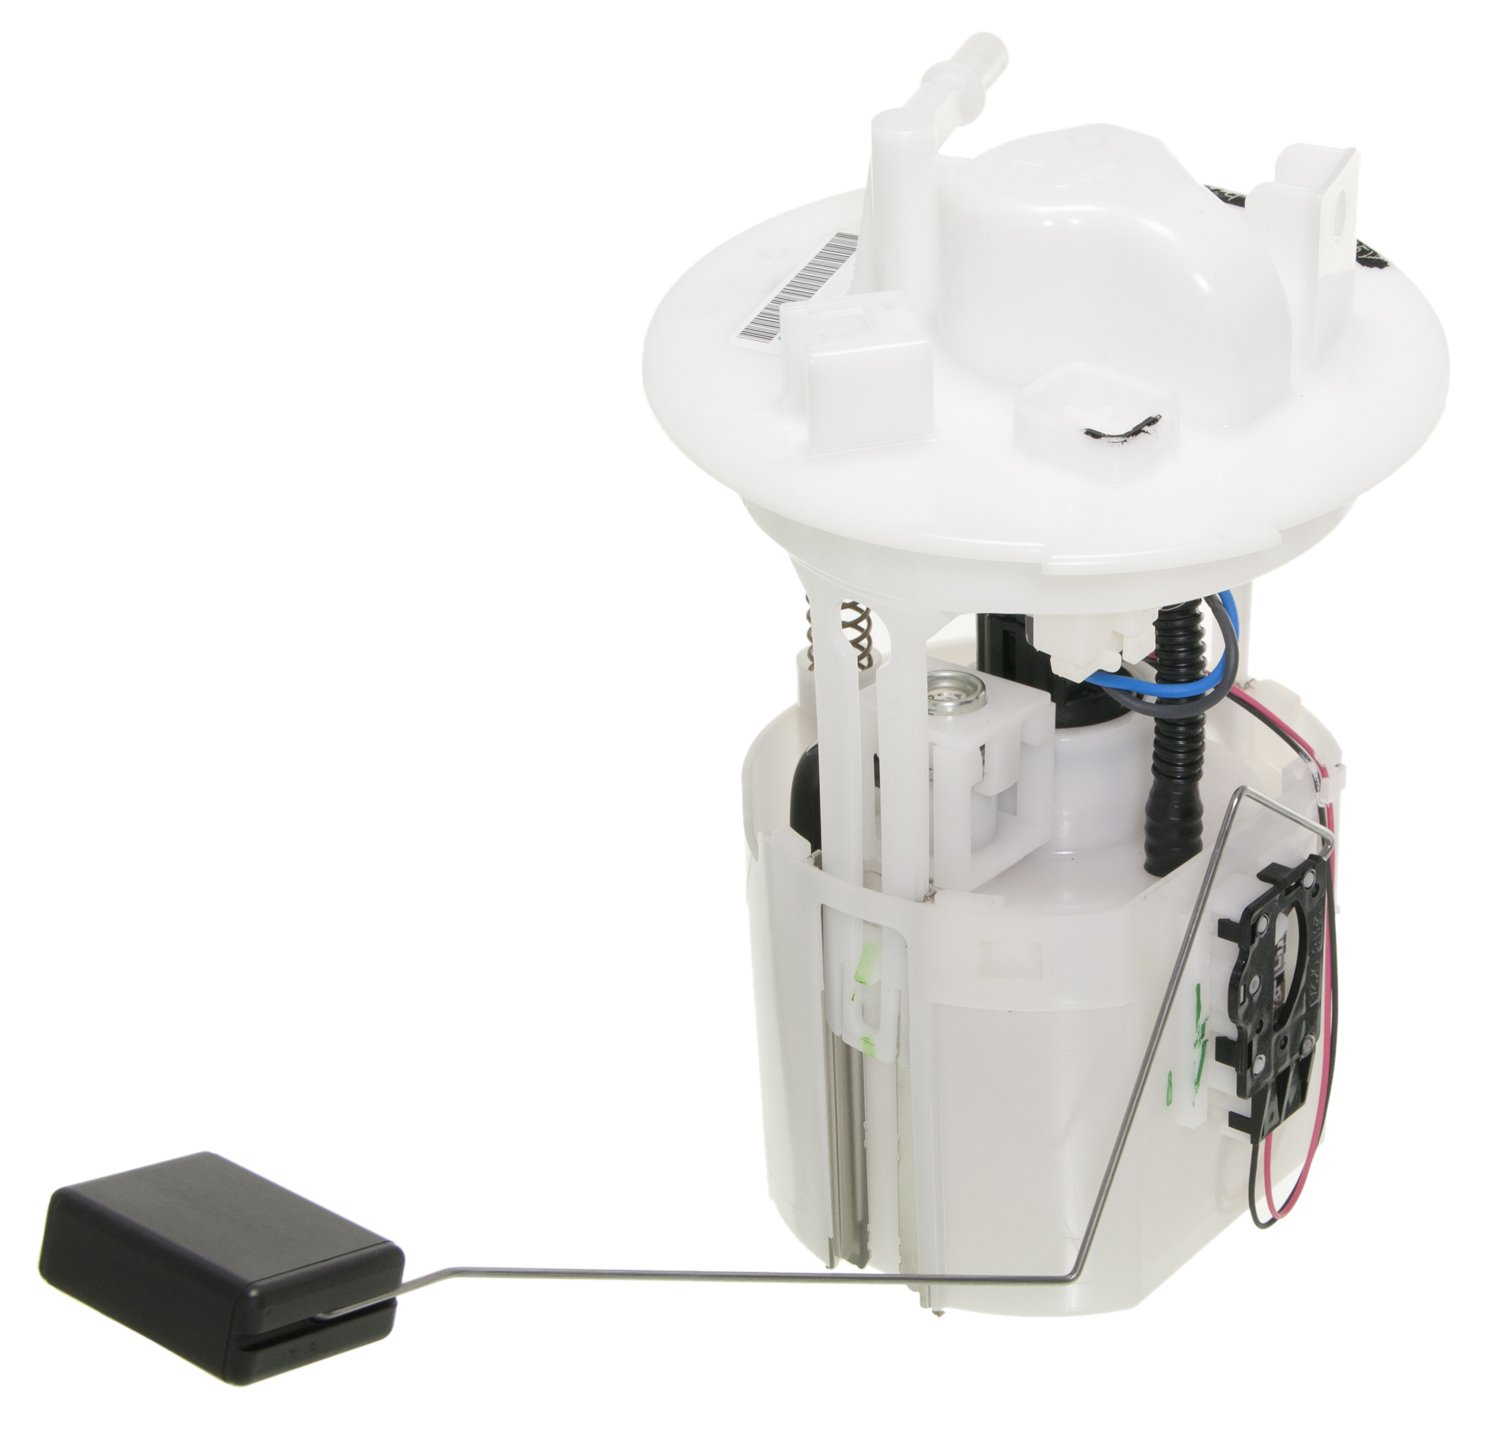 2005 Mazda 6 Fuel Pump Module Assembly Filter Location 5c P76310m